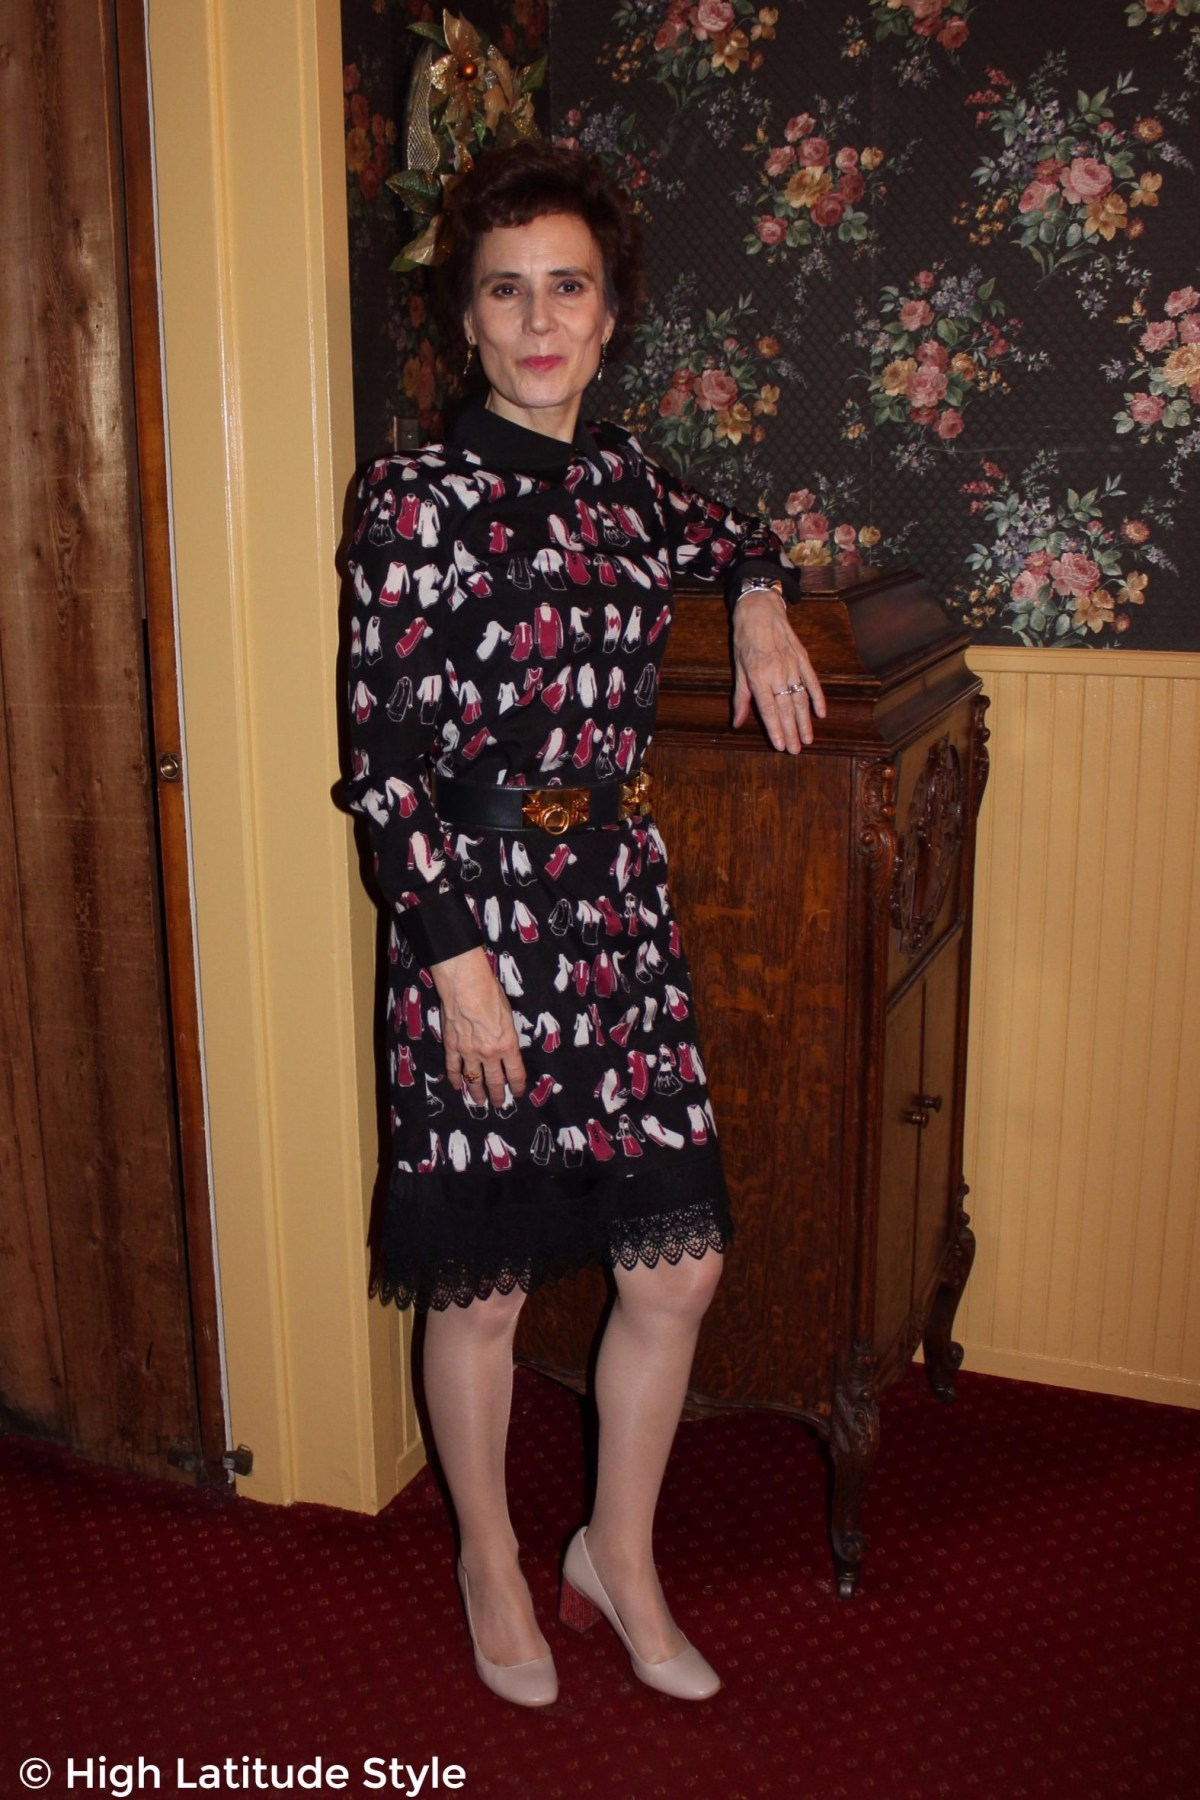 posh chic midlife woman in printed dress over lace hem underskirt